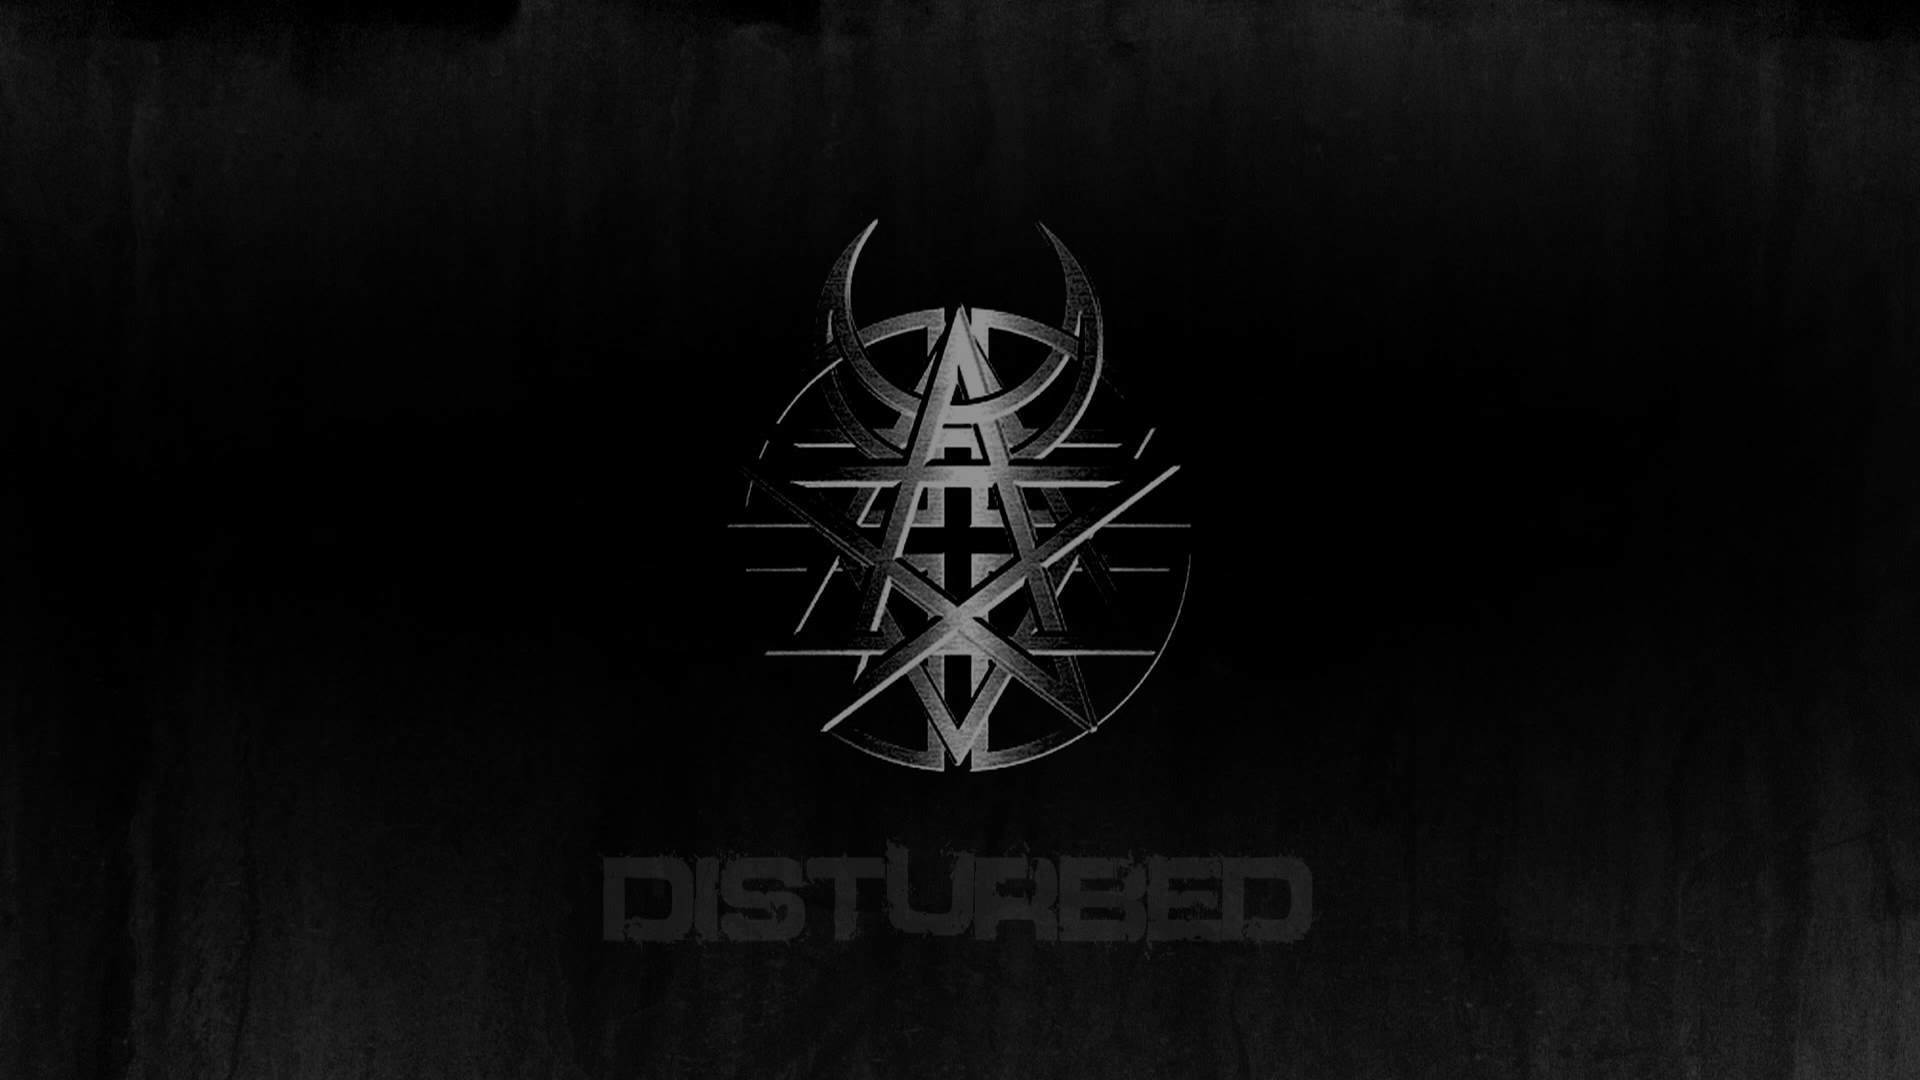 disturbed wallpaper hd